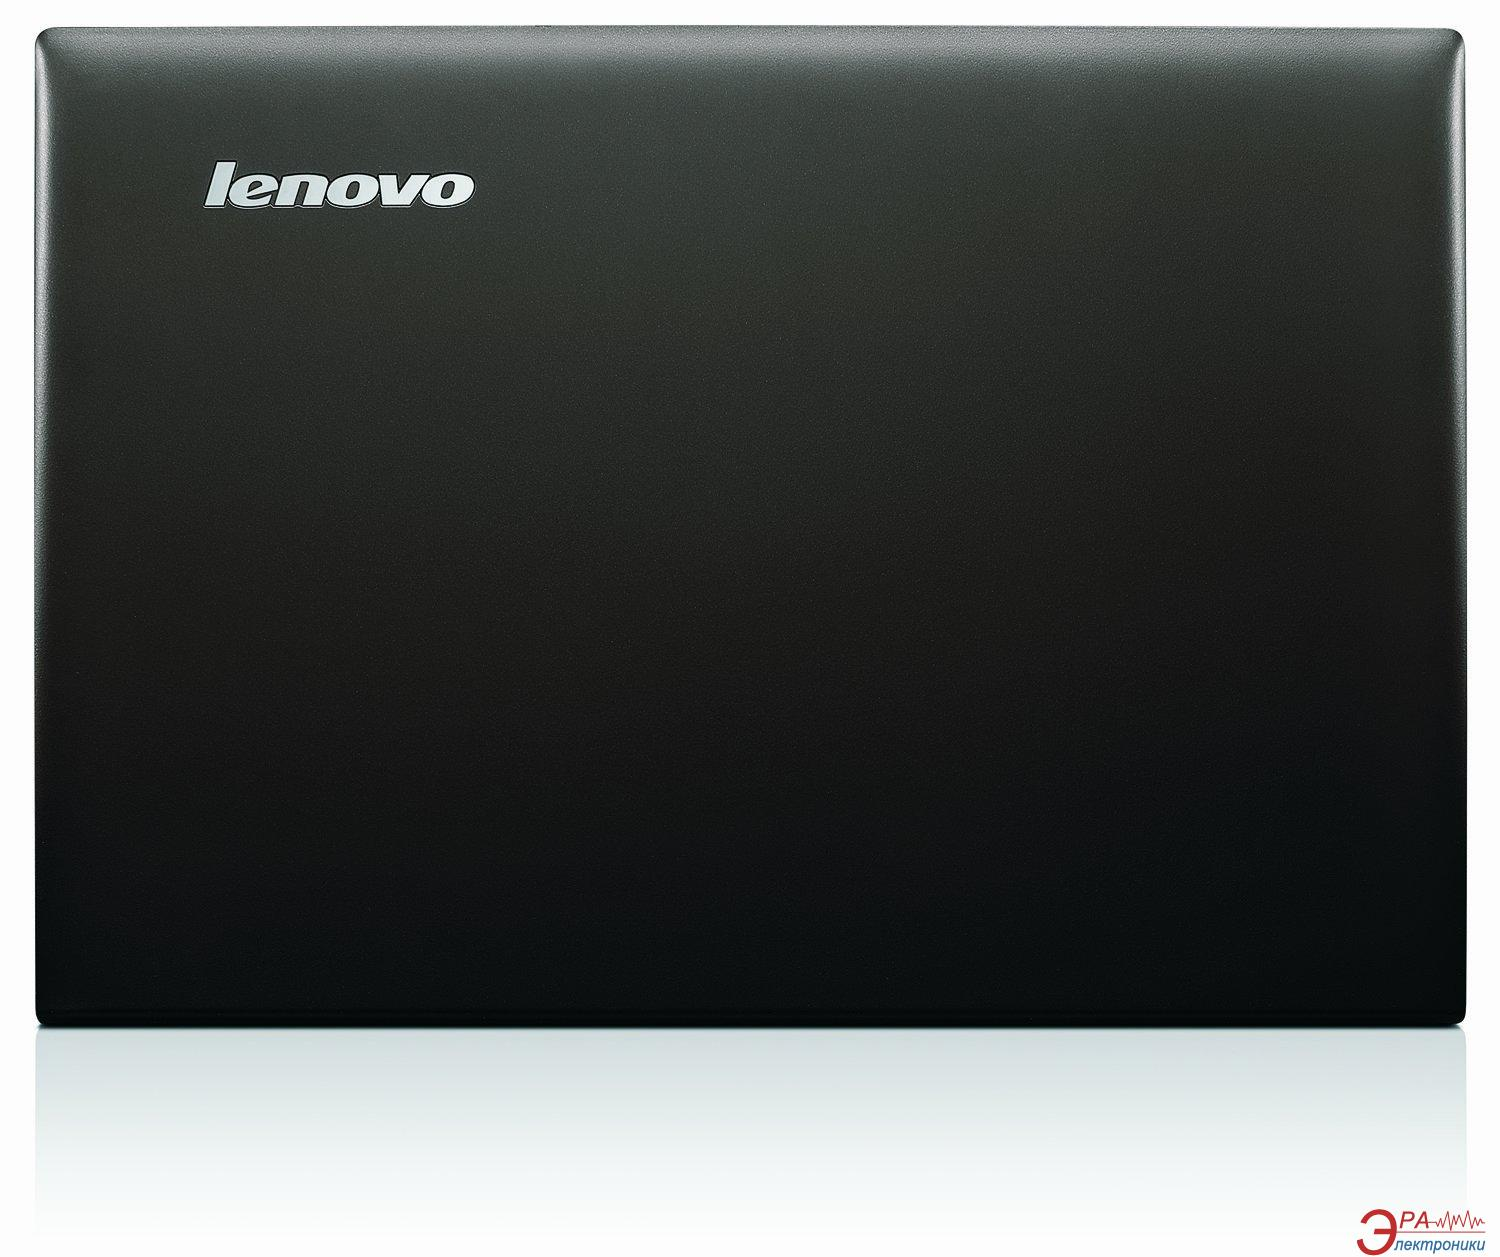 Ноутбук Lenovo IdeaPad Z510A (59-402575) Black 15,6